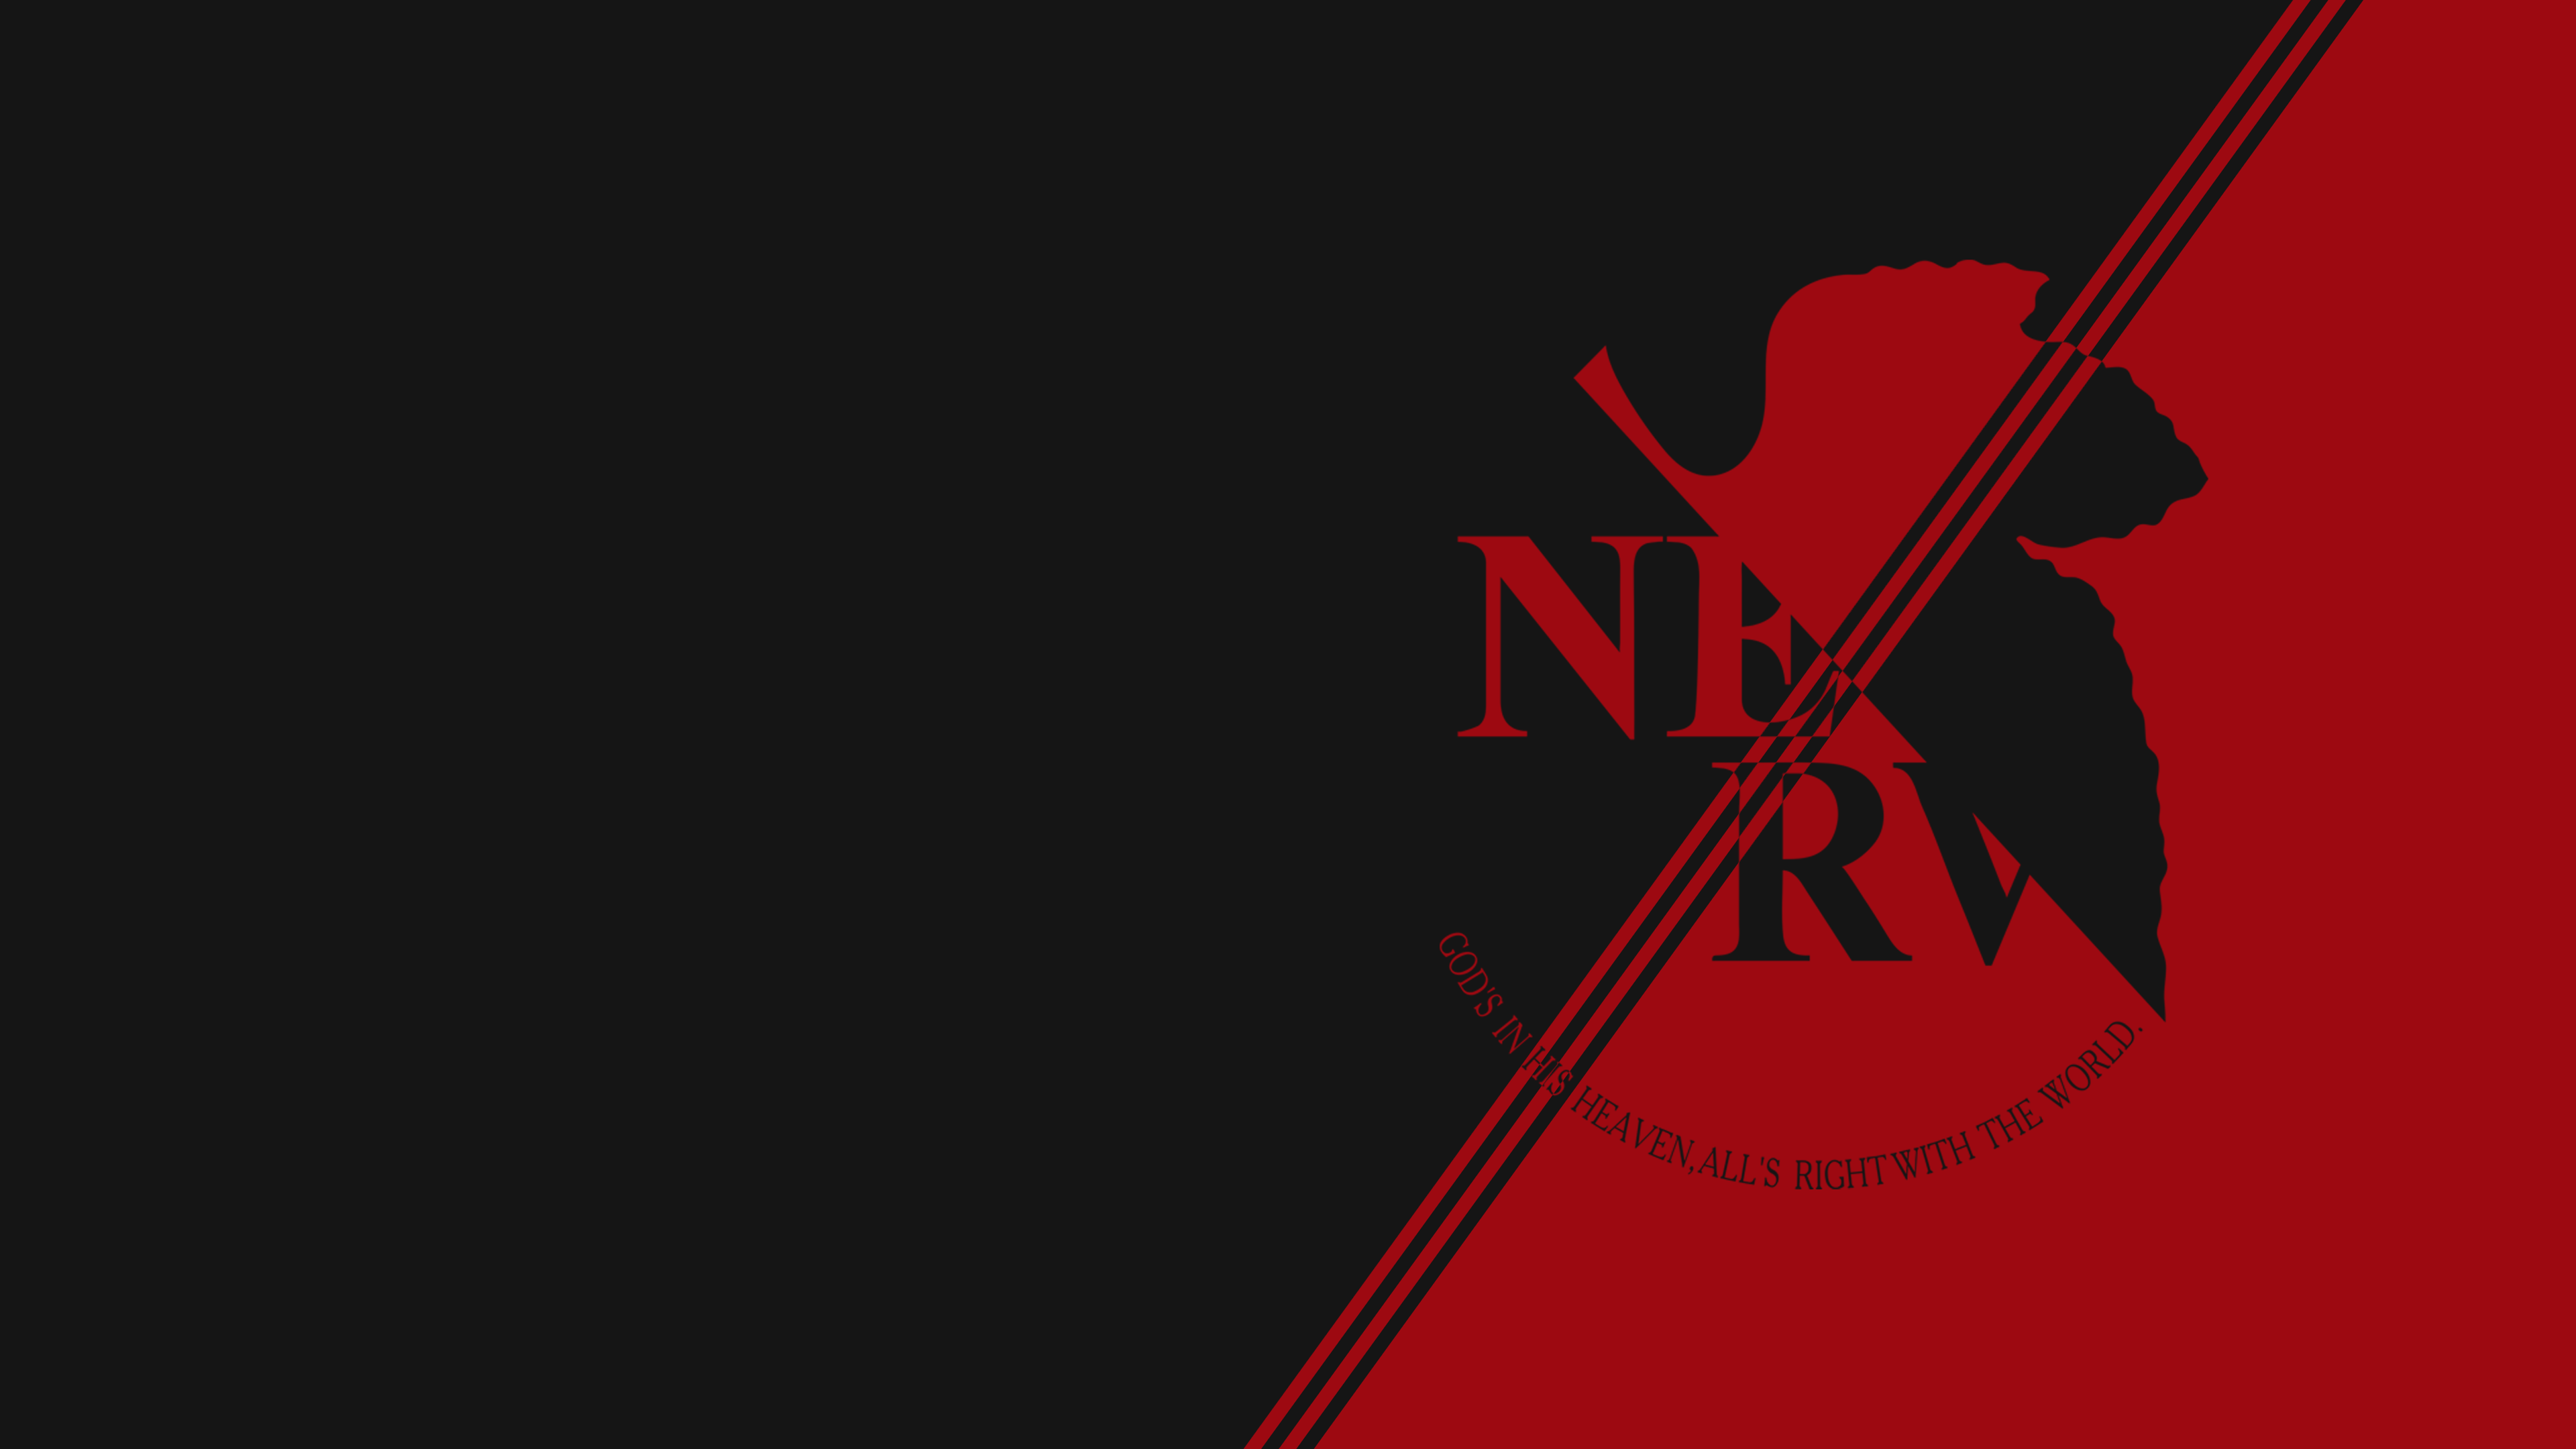 NERV Wallpapers   Top NERV Backgrounds   WallpaperAccess 3840x2160